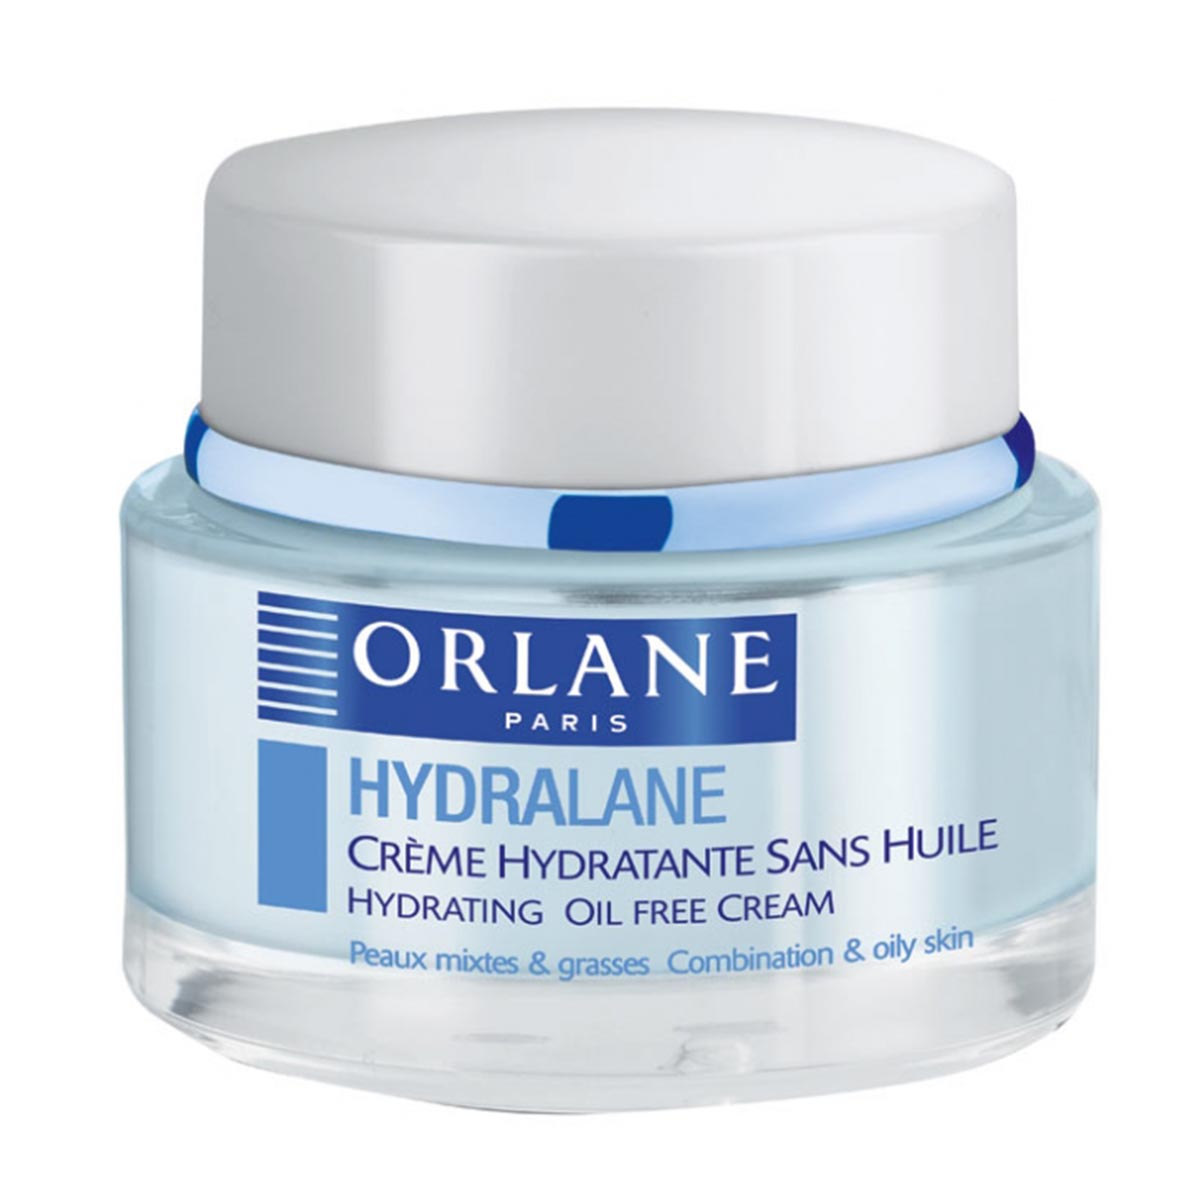 Orlane hydralane hydrating oil free cream 50ml